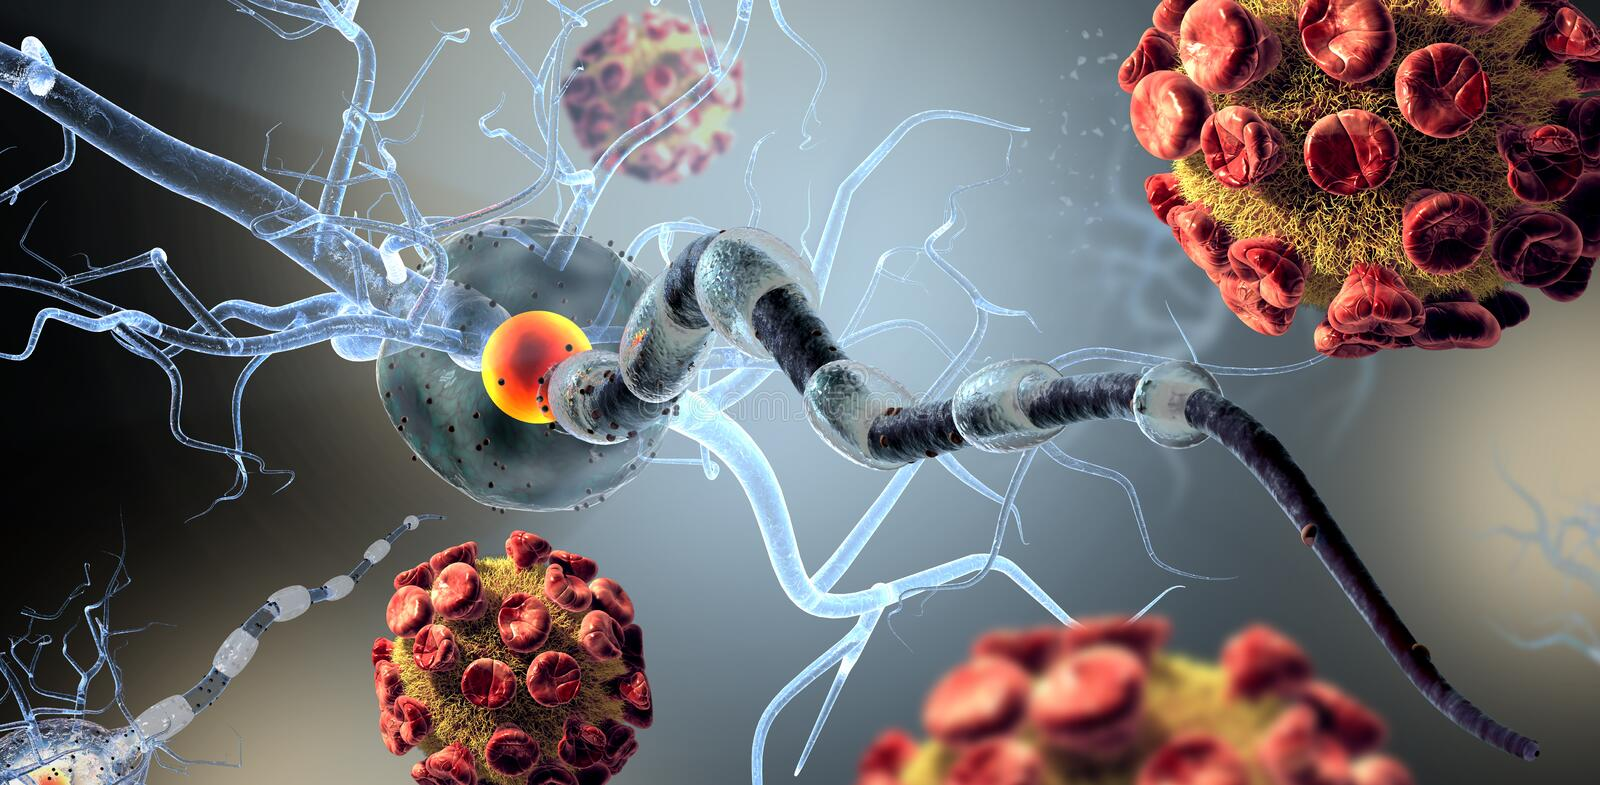 Viruses attacking nerve cells. High quality 3d render of viruses attacking nerve cells, concept for Neurologic Diseases, tumors and brain surgery stock photo